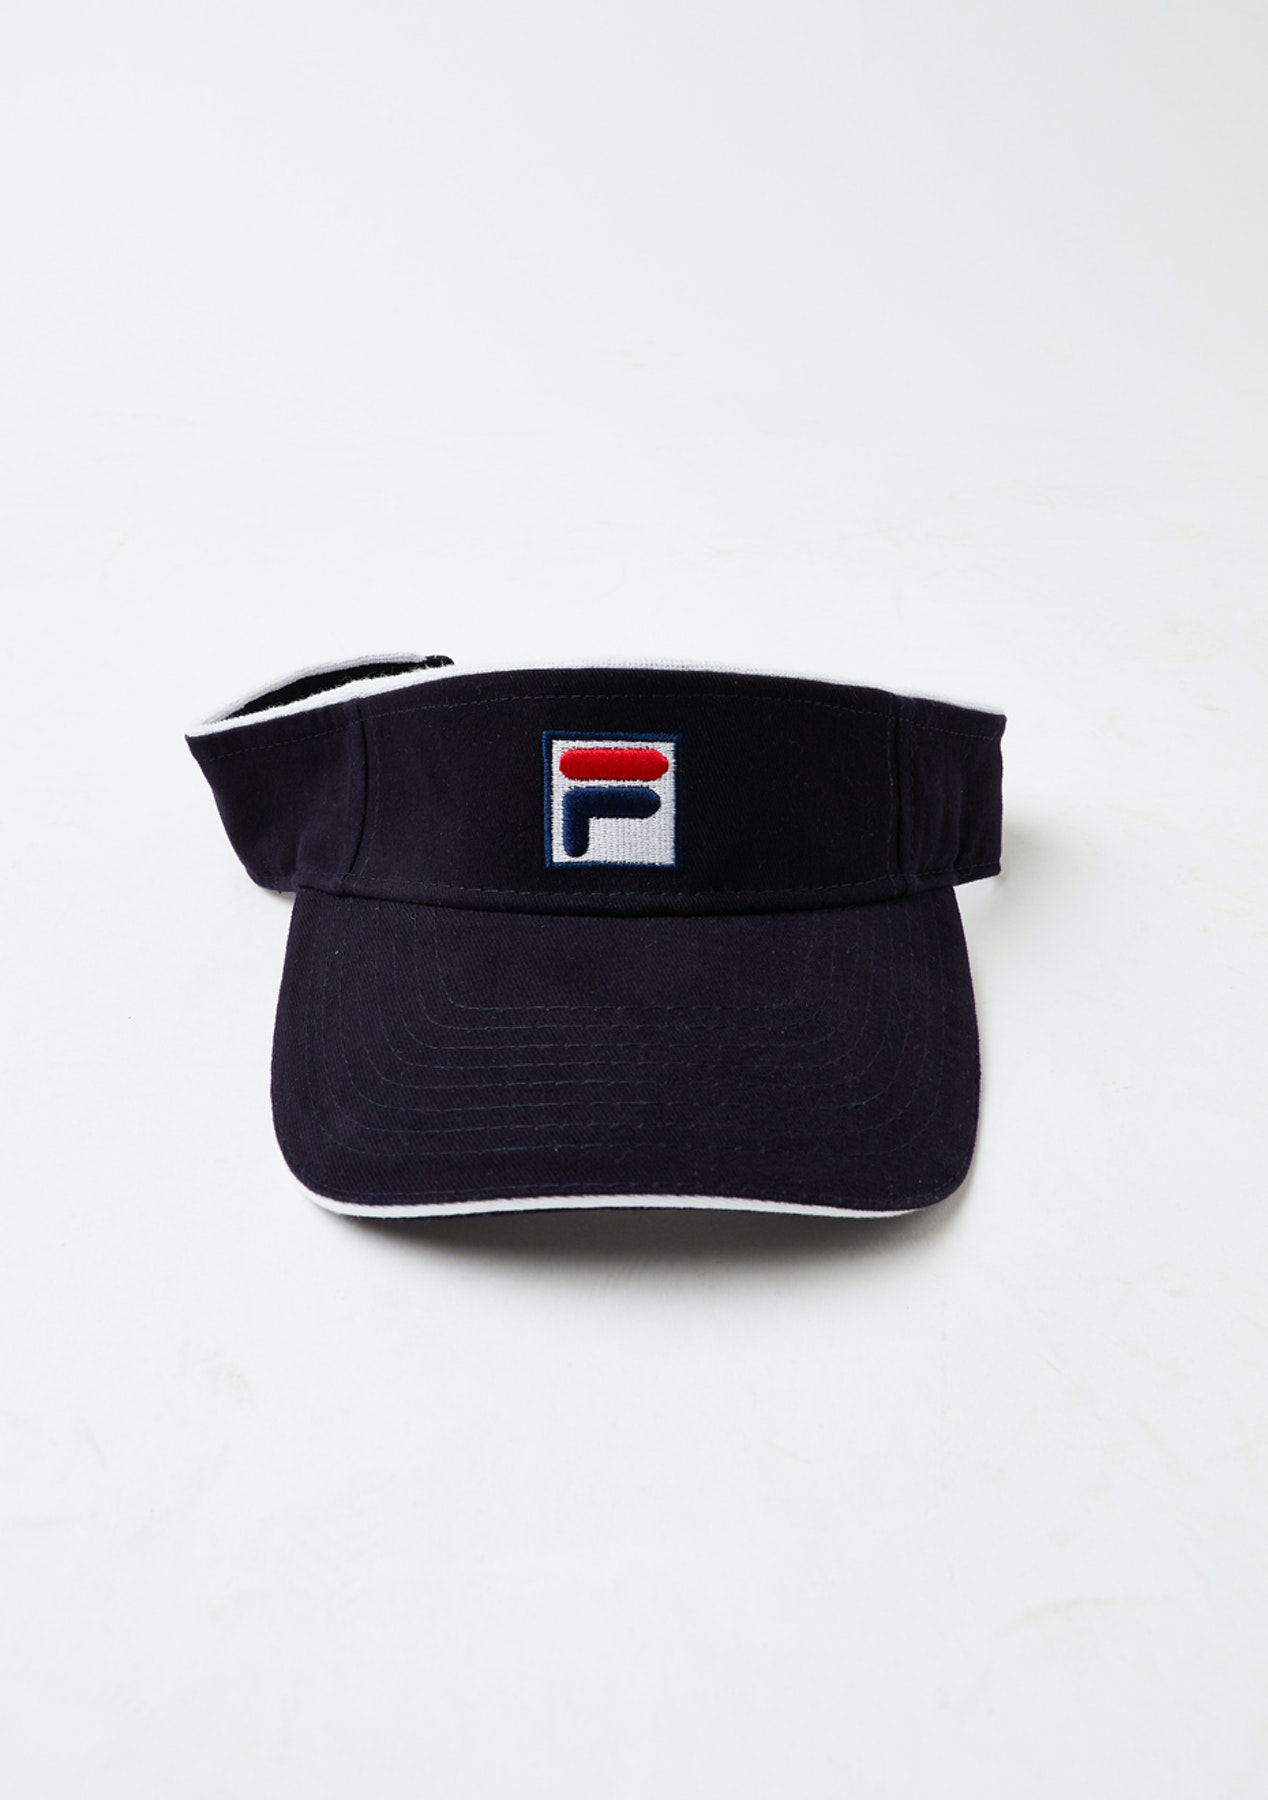 0c040c7a9f3e99 Fila Brushed Cotton Visor - Navy - Fila Summer - Mens and Womens Clearance  - Onceit